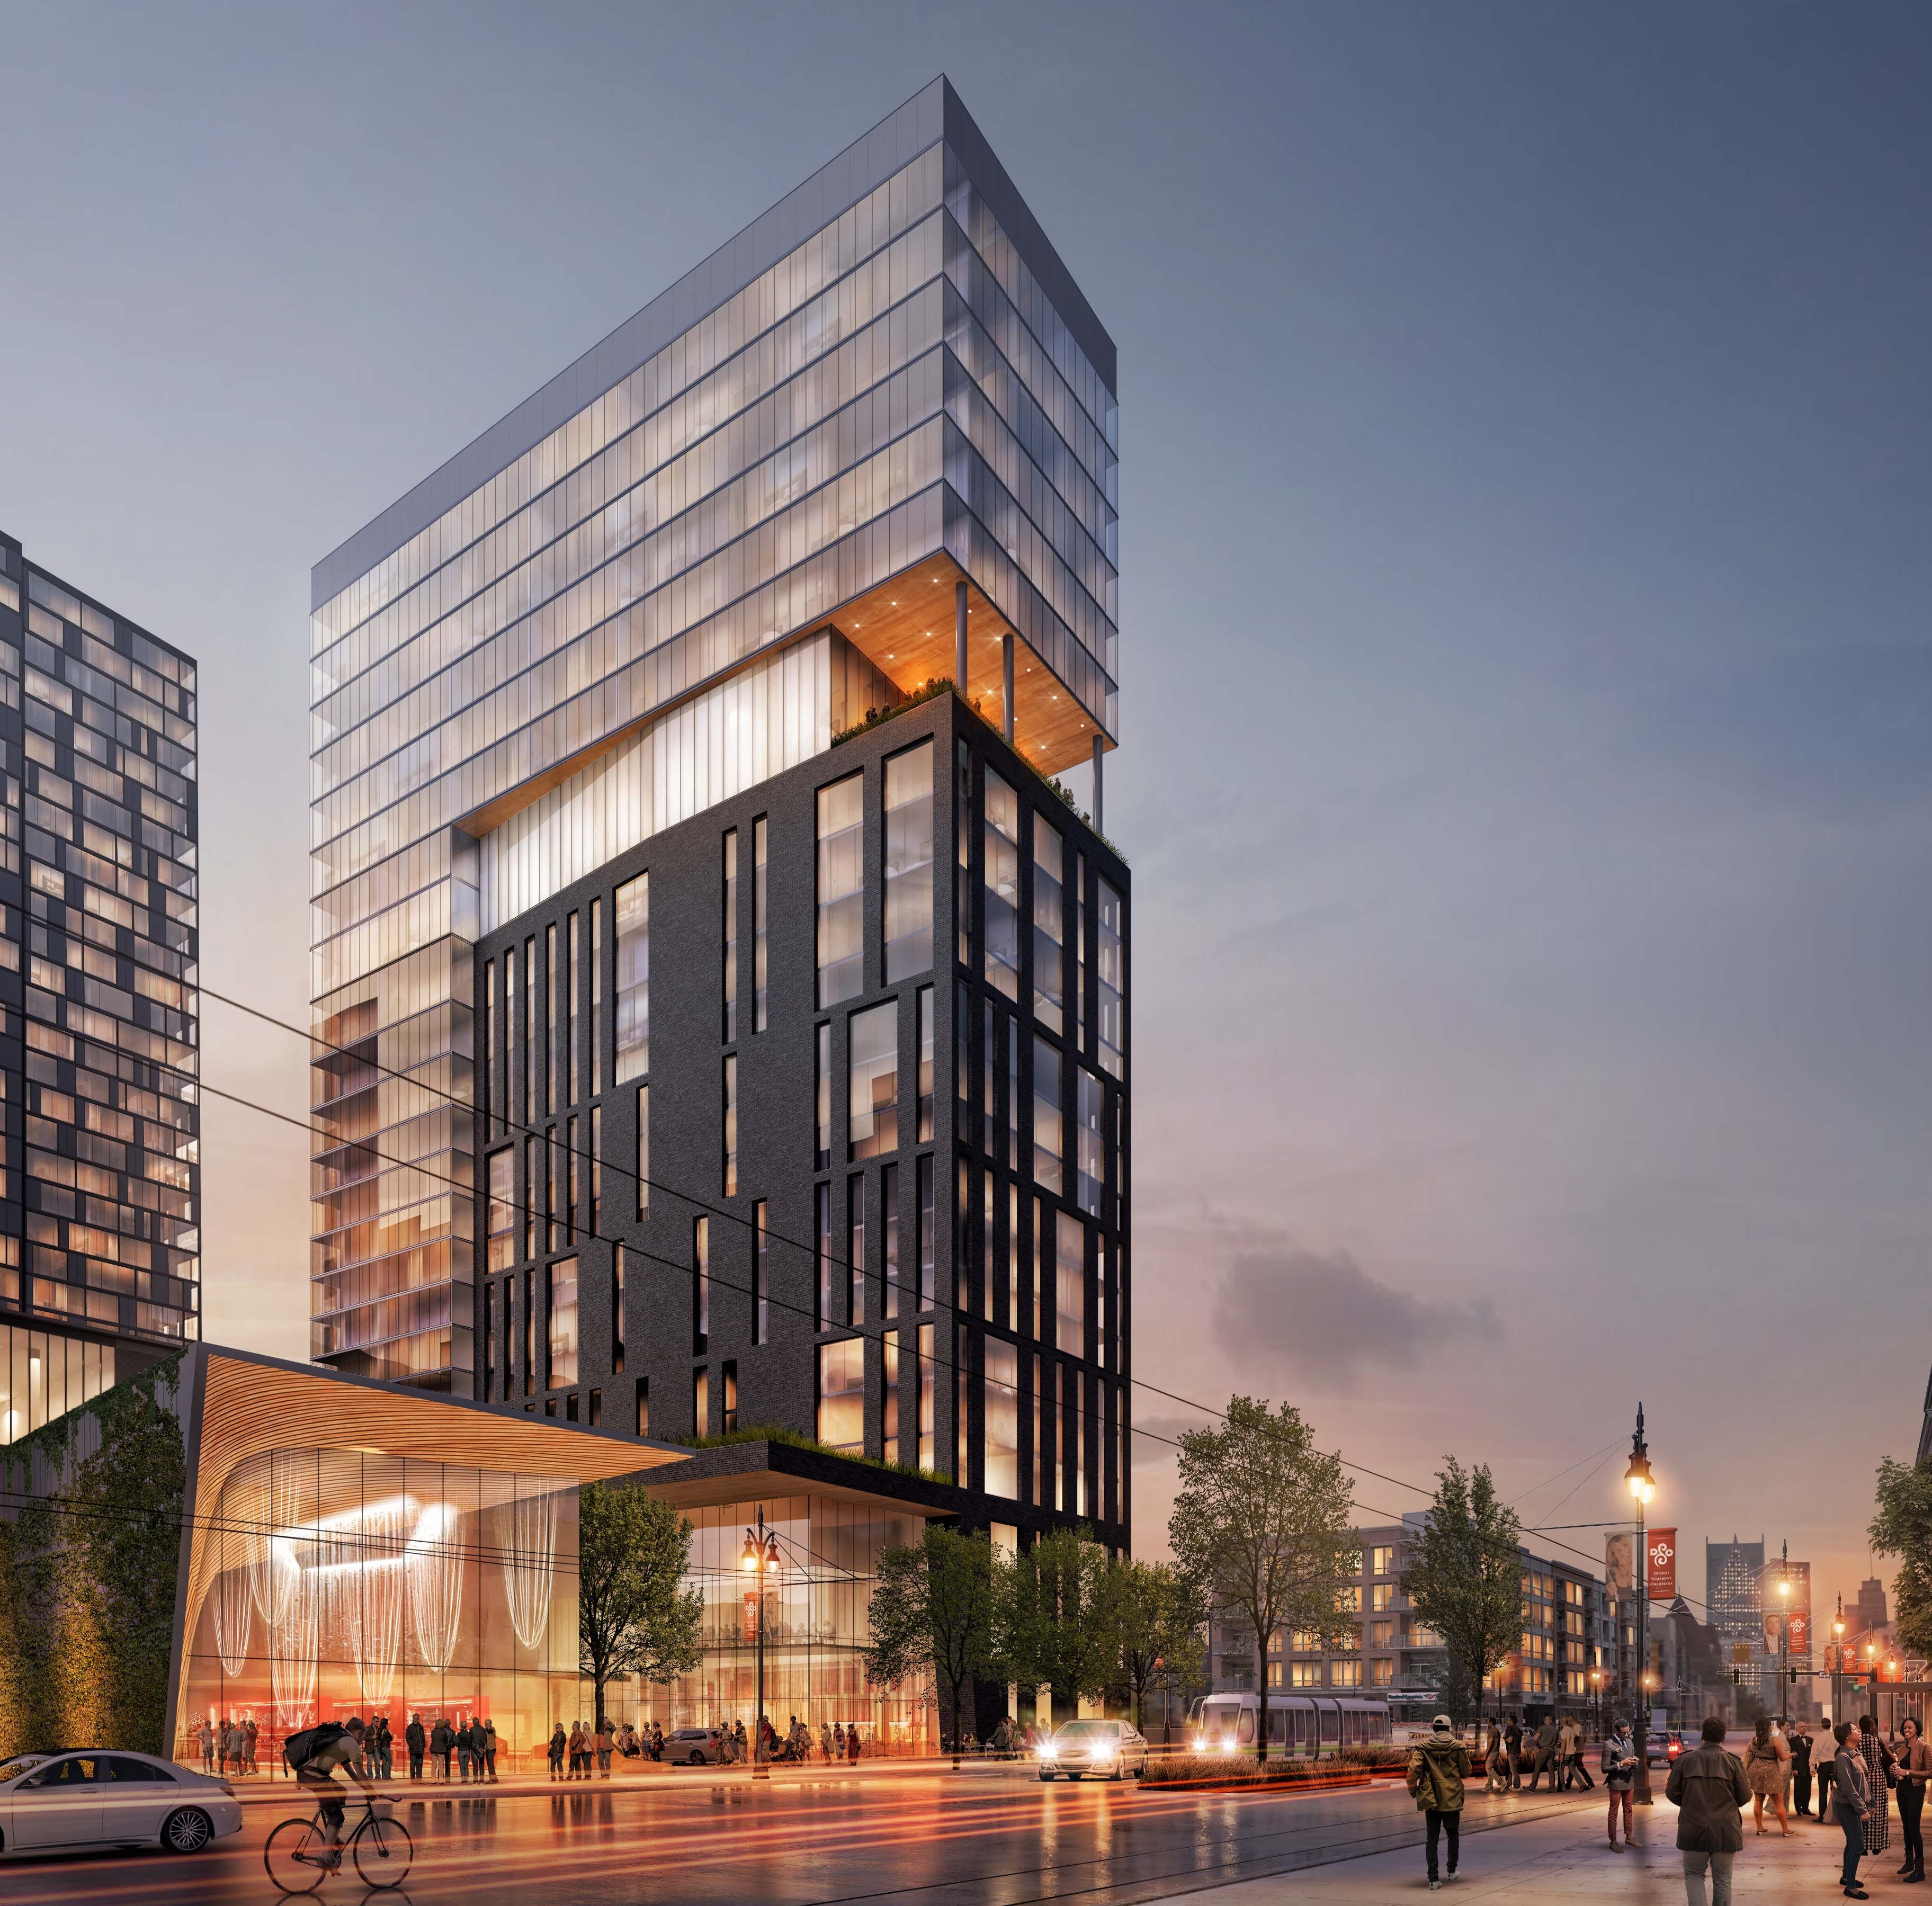 Major new high-rise, mixed-use project announced for Midtown Detroit